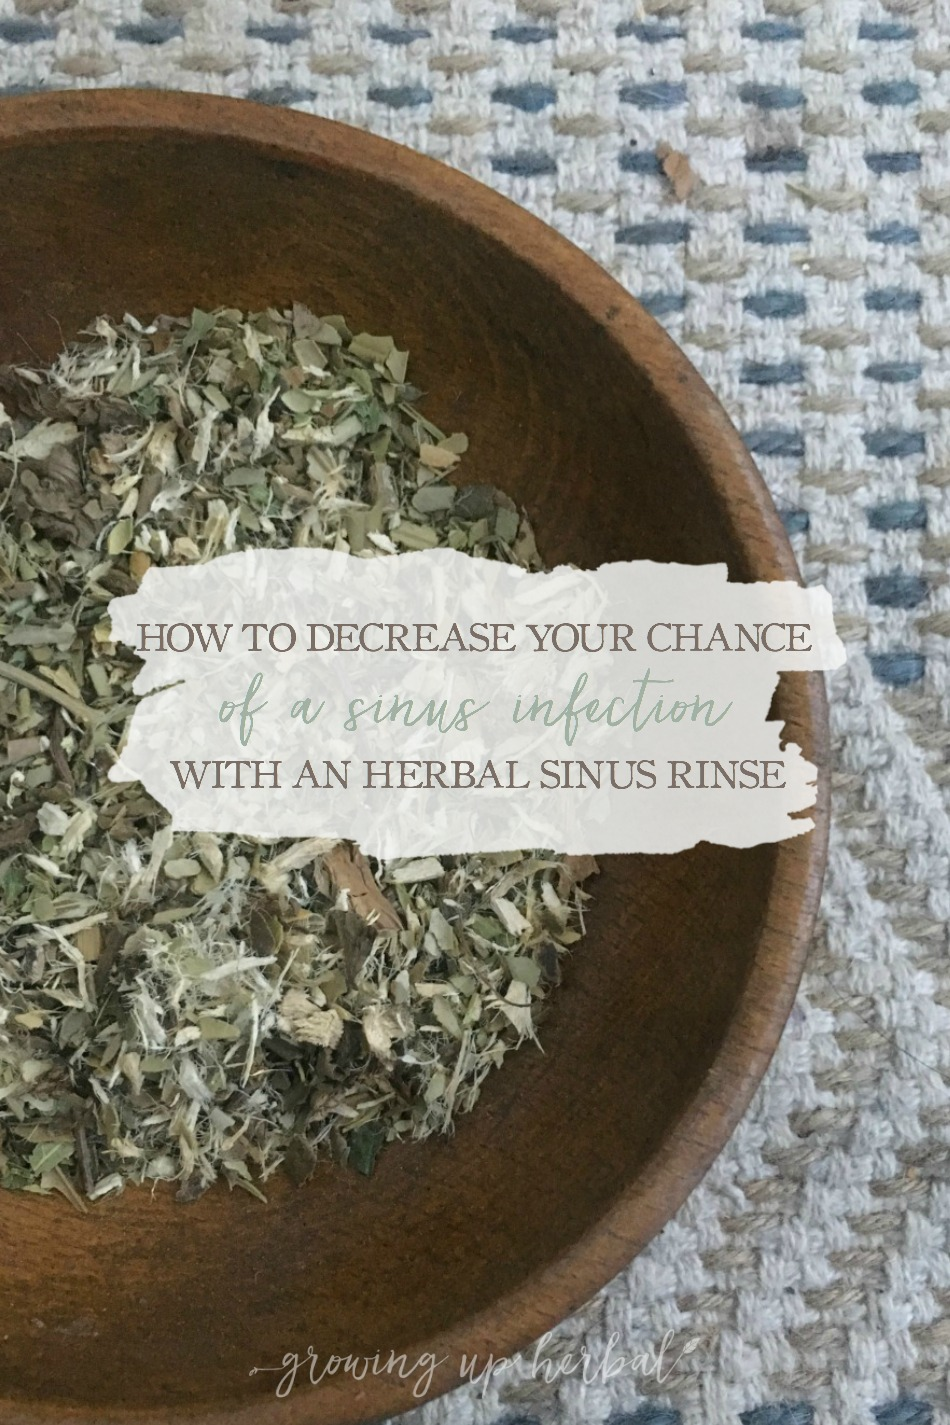 How To Decrease Your Chance Of A Sinus Infection With An Herbal Sinus Rinse | Growing Up Herbal | If sinus issues are a common occurrence for you, here's an herbal remedy that can offer you some much needed relief.